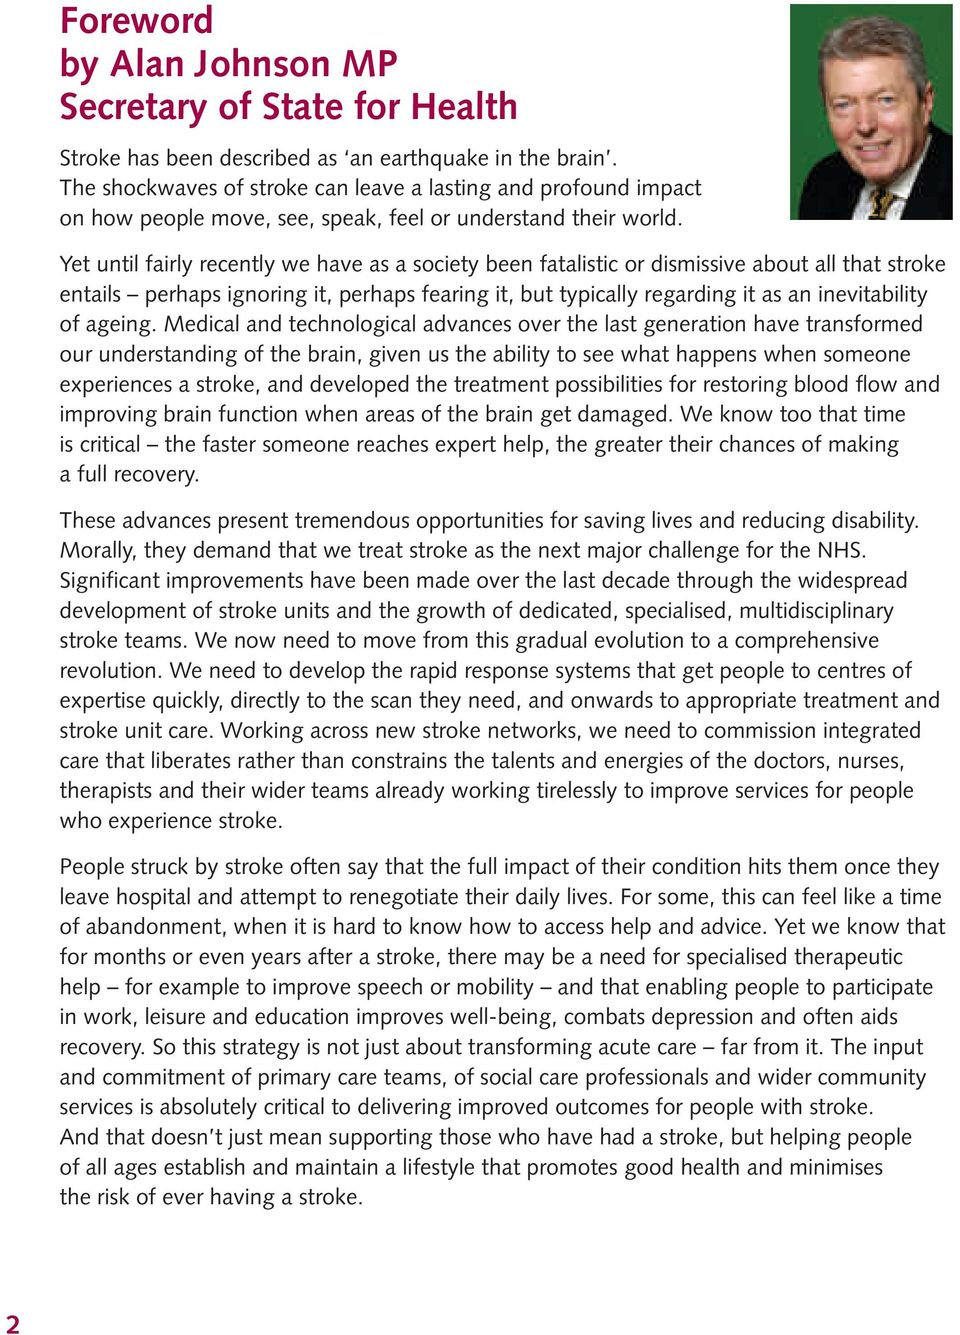 Yet until fairly recently we have as a society been fatalistic or dismissive about all that stroke entails perhaps ignoring it, perhaps fearing it, but typically regarding it as an inevitability of